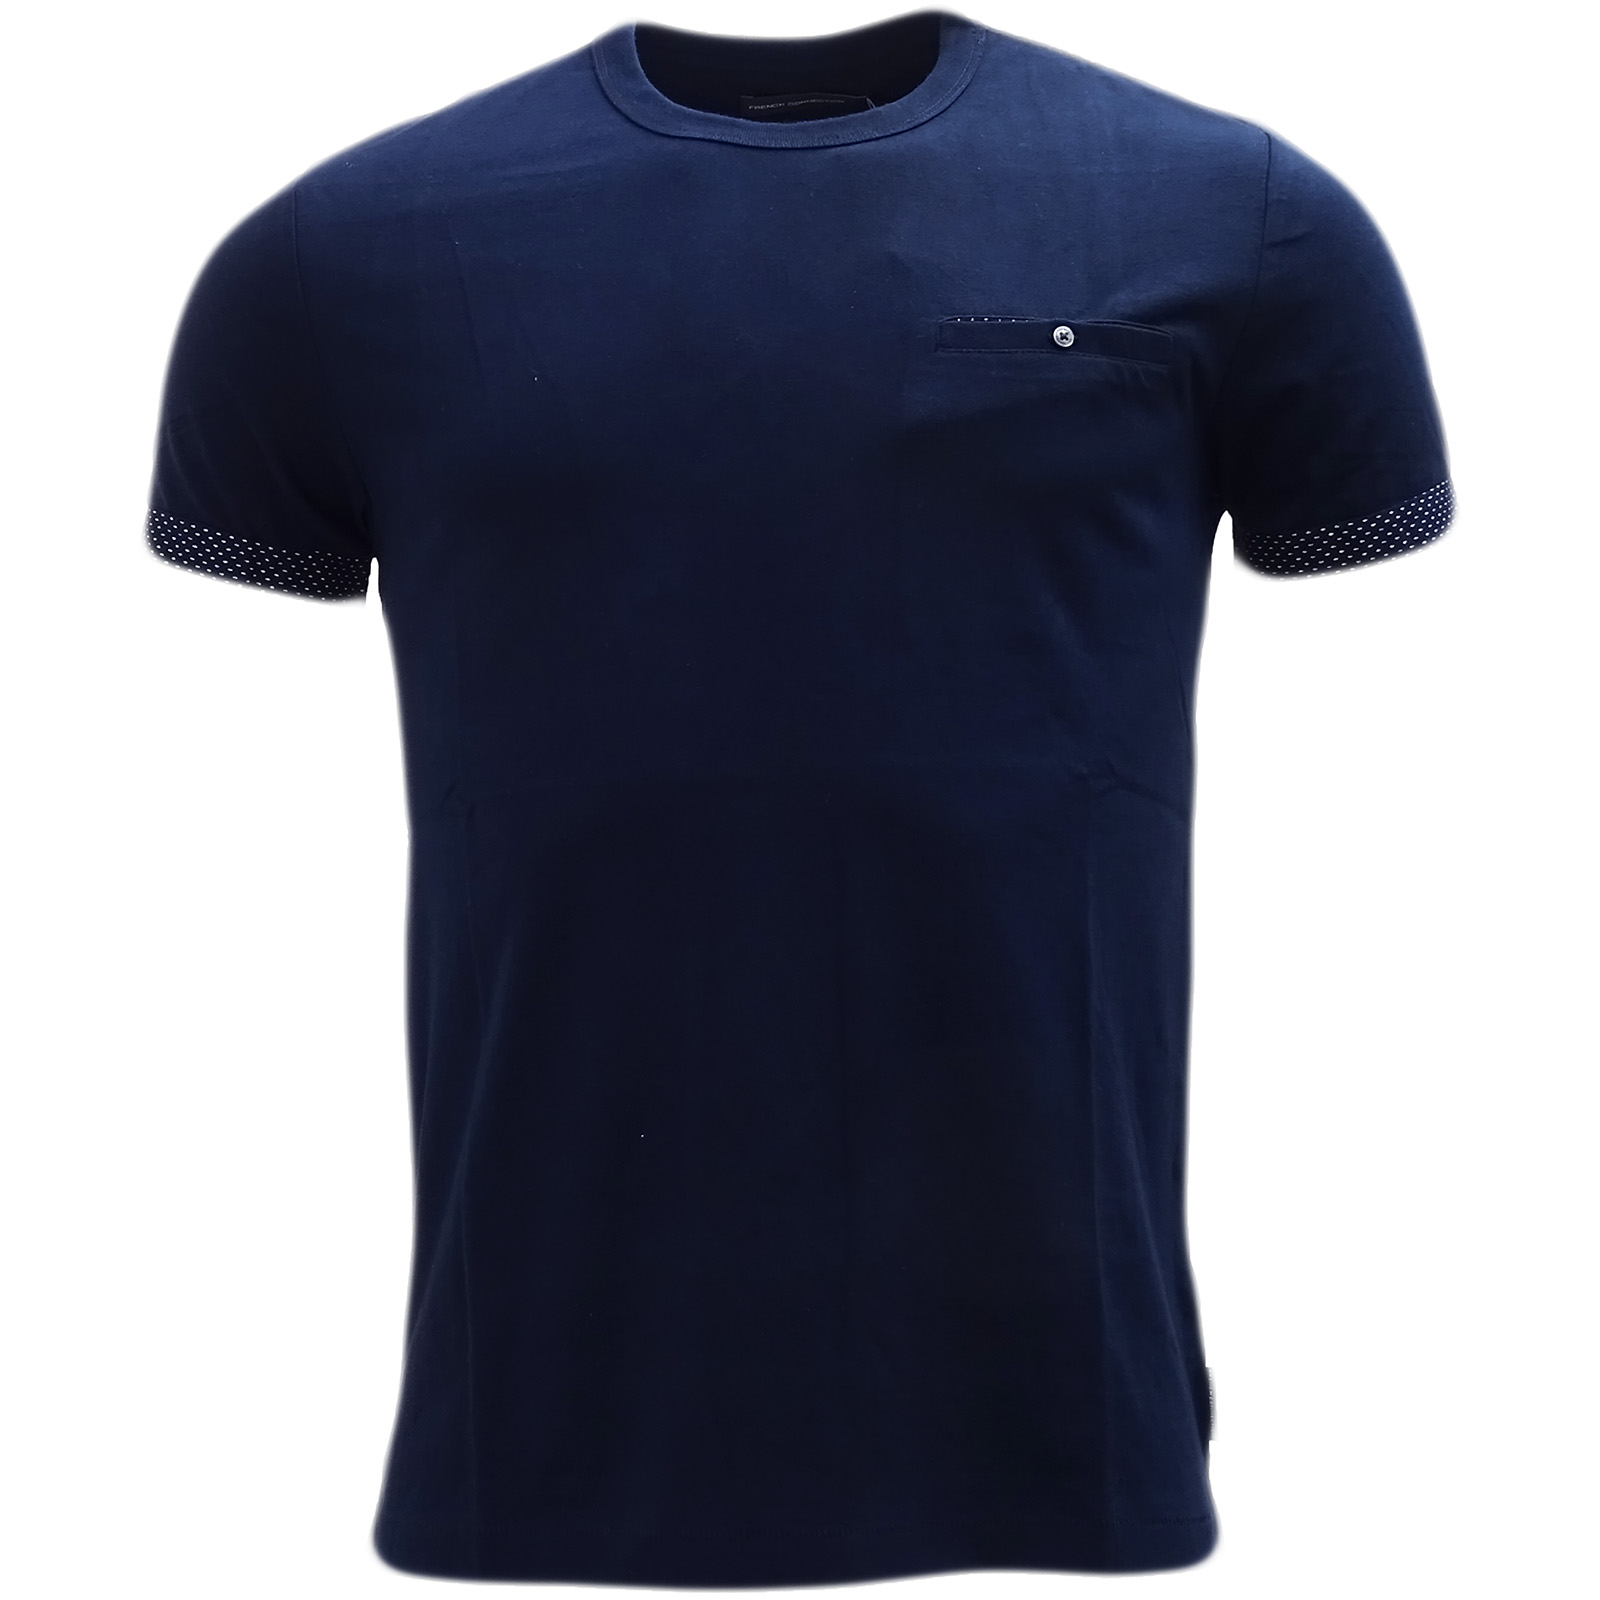 French Connection Marine Blue Plain T-Shirt 56Hfh -